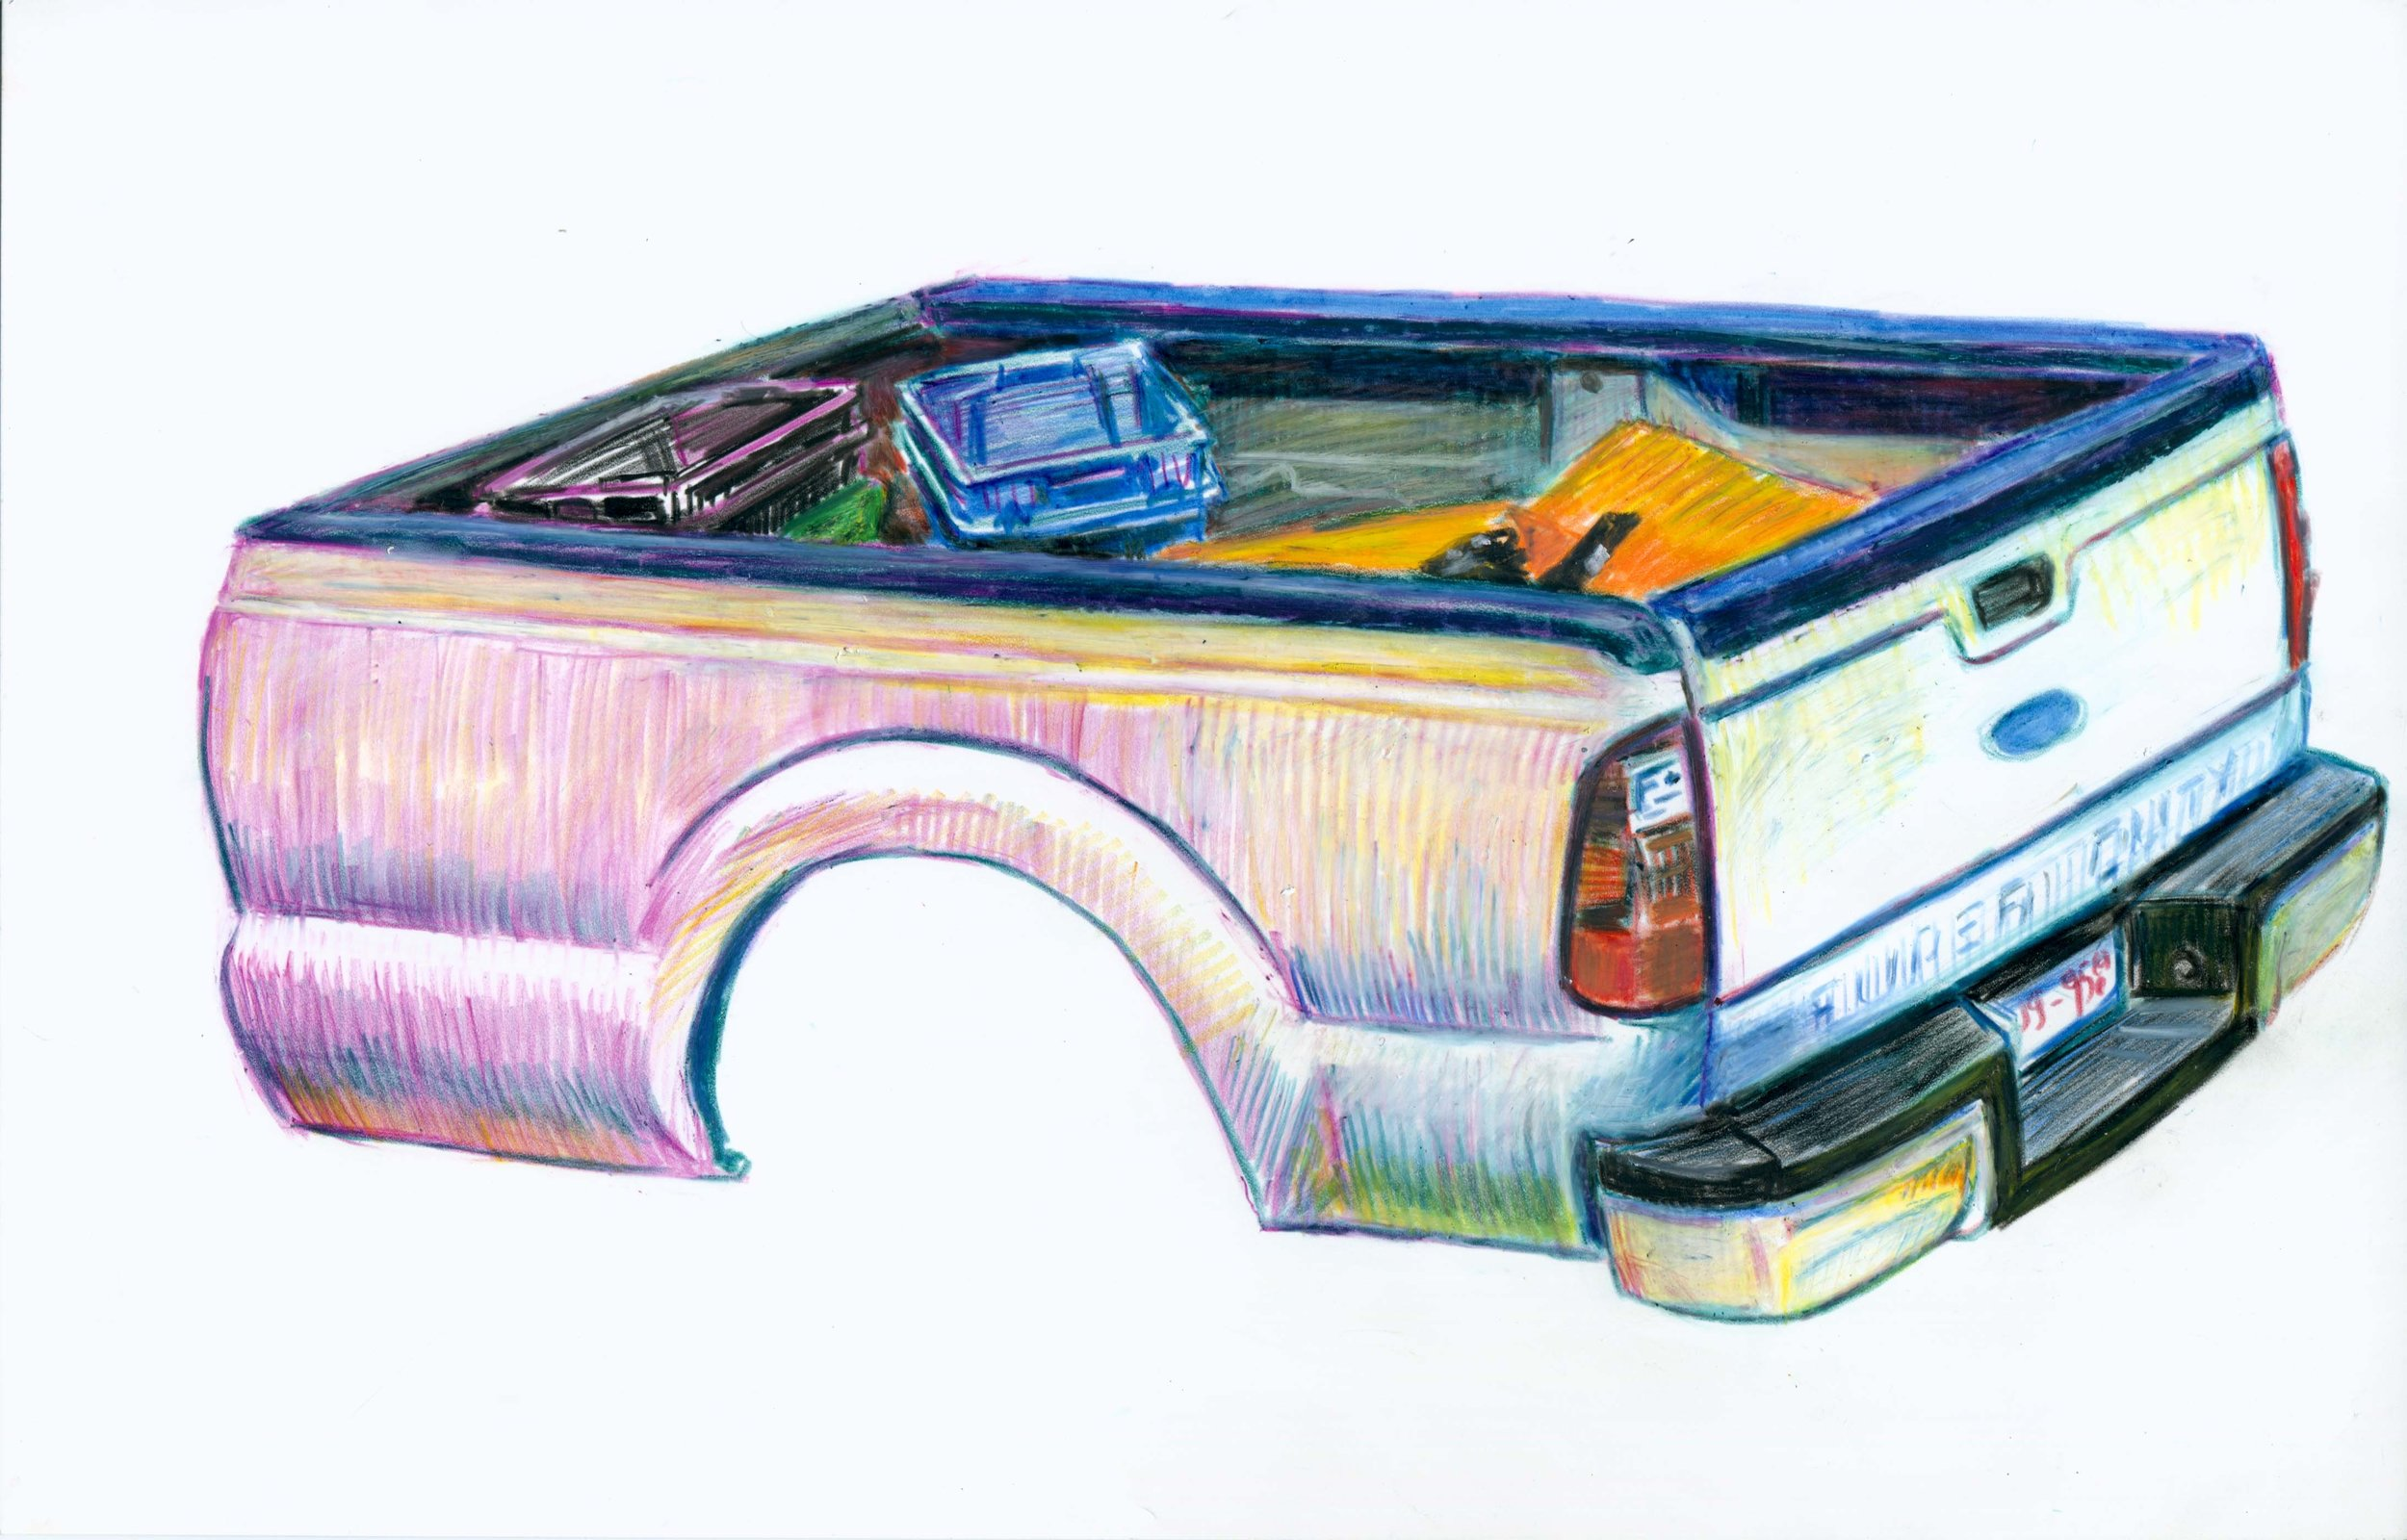 TRUCK BEDS - grease pencil on Yupo paper, mounted on wood, 2017-18